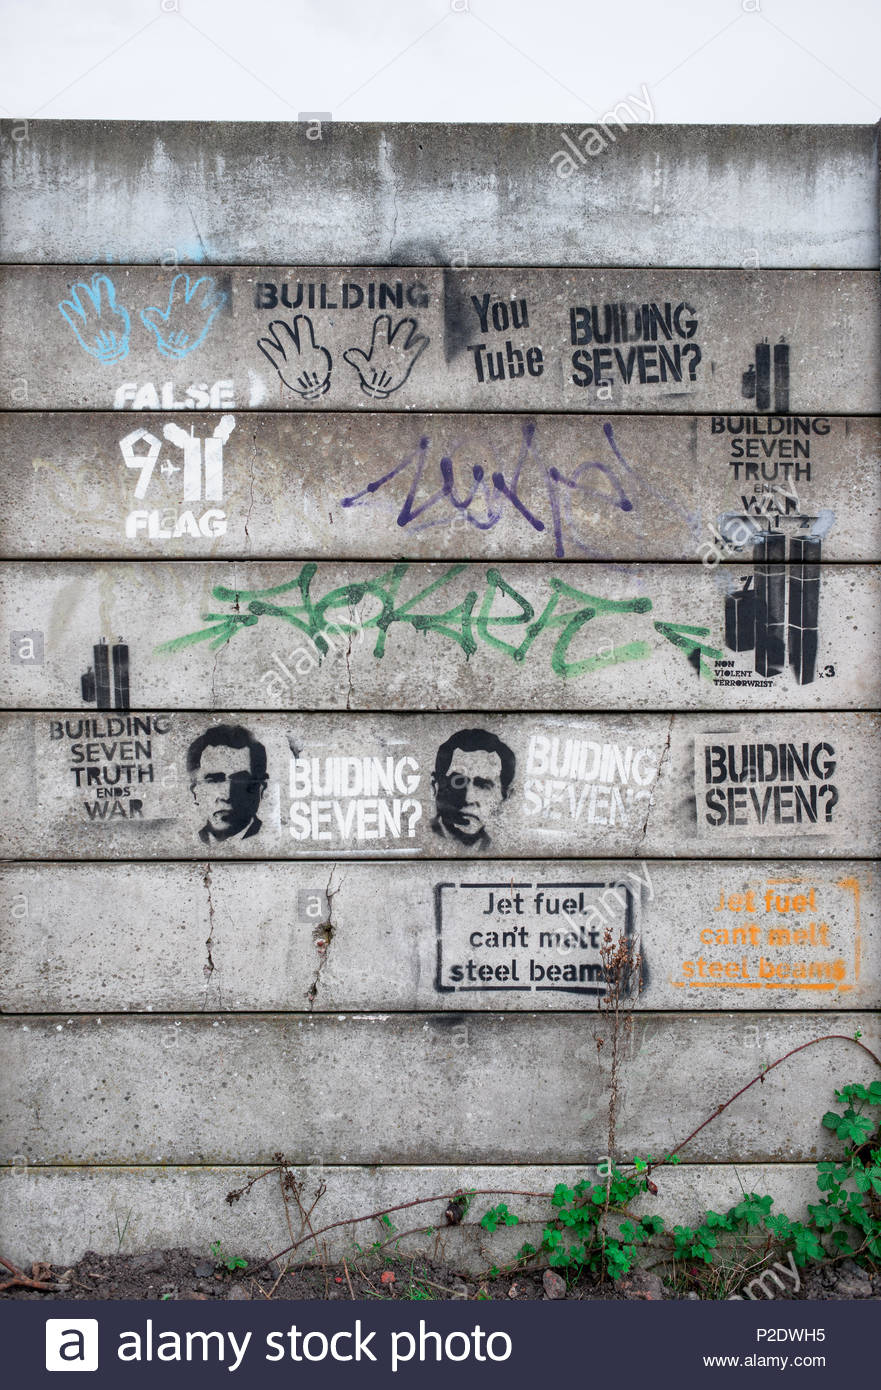 Building seven: Conspiracy theory graffiti on concrete wall insinuating that the collapse of building 7 during the 9/11 World Trade Center twin towers - Stock Image